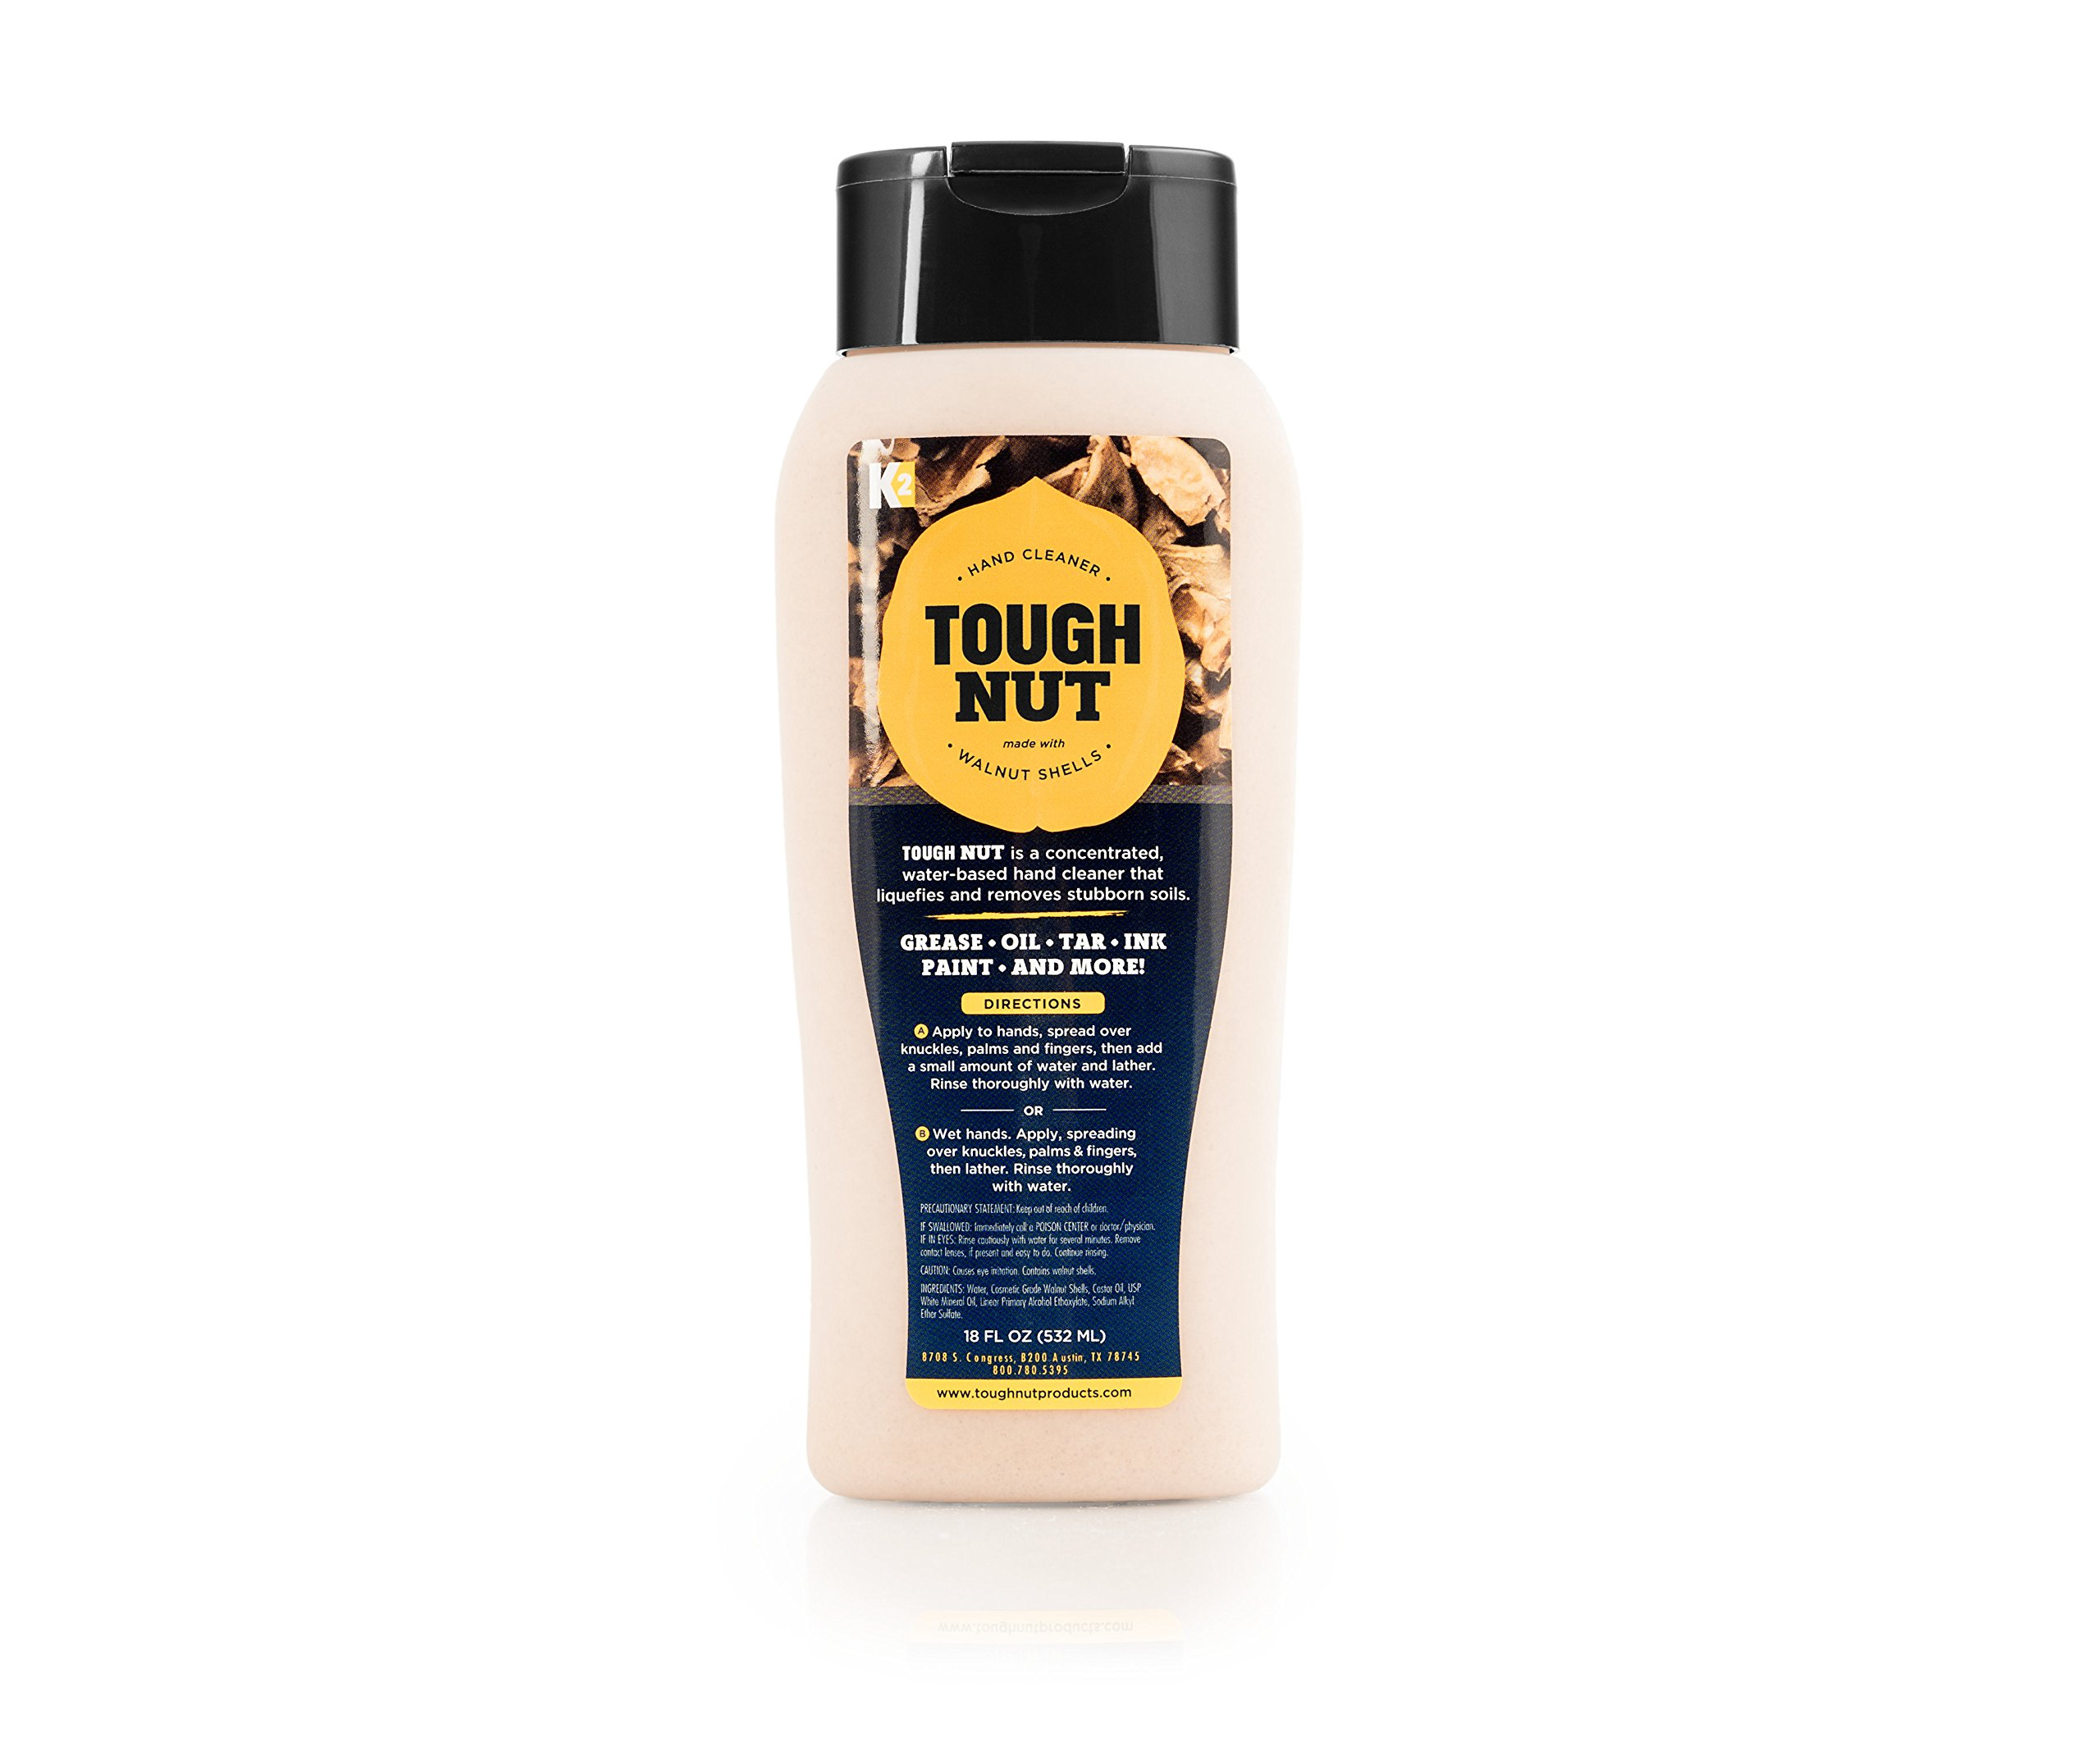 The Original Tough Nut Hand Cleaner - Heavy Duty, Removes Grease, Oil, Dirt